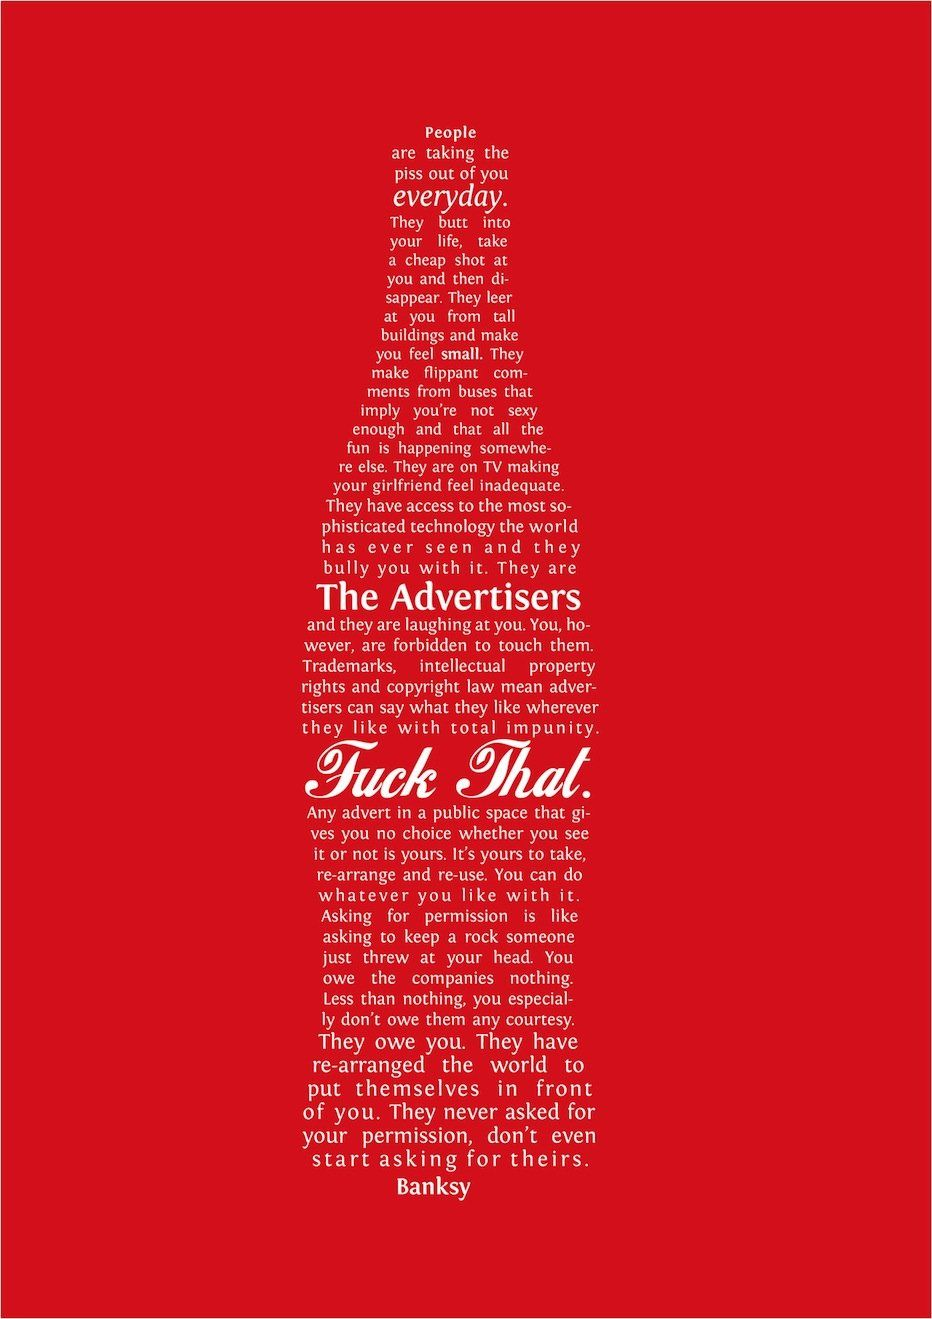 Fake Coke Ad Actually Bad-Ass Banksy Quote - GOOD